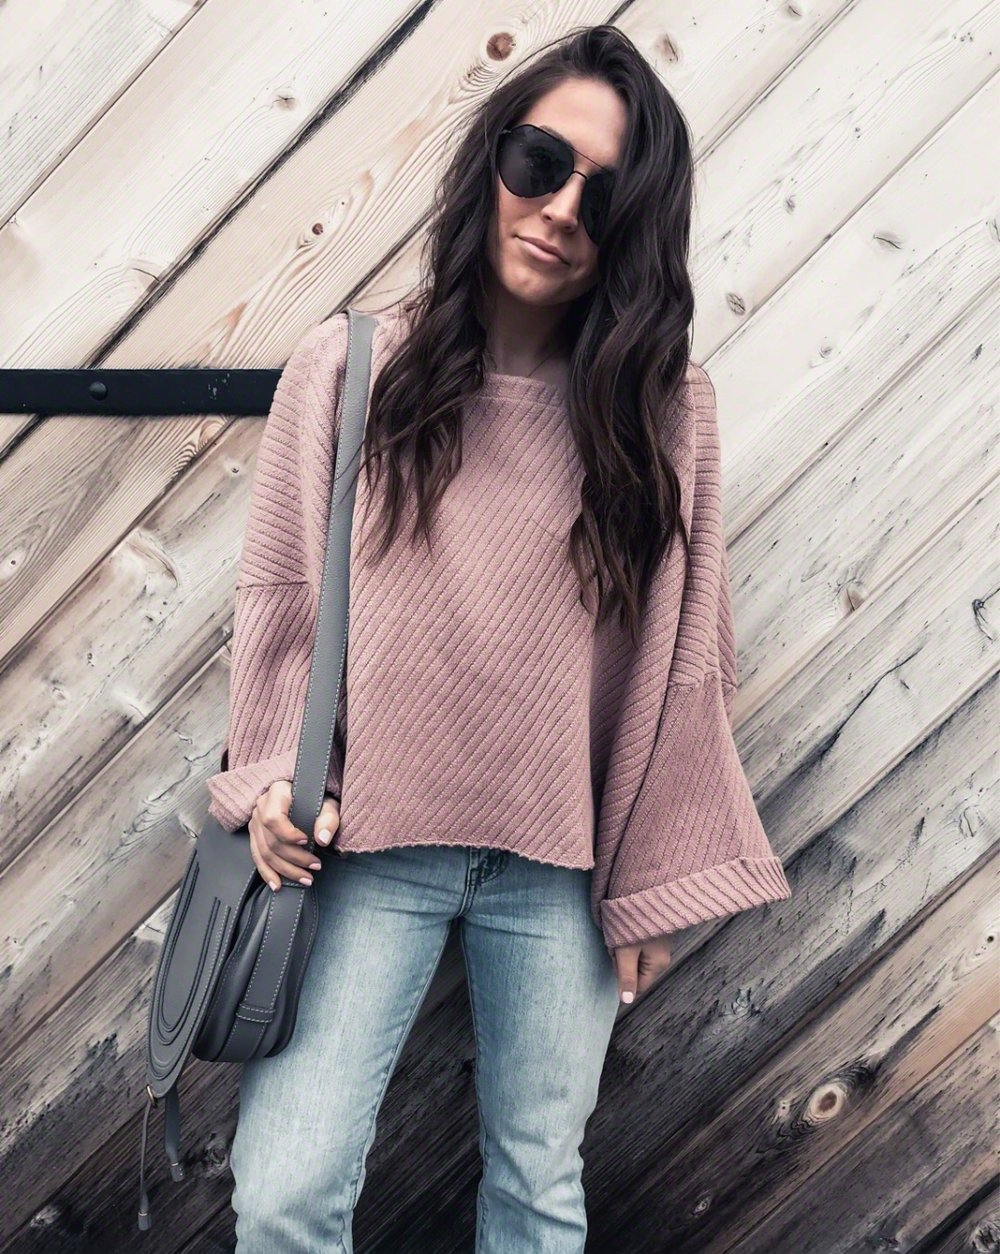 Must Have White Top for Spring | Pine Barren Beauty | spring outfit idea, spring transition outfit idea, blush oversized sweater, free people sweater, light wash denim, madewell denim, outfit of the day